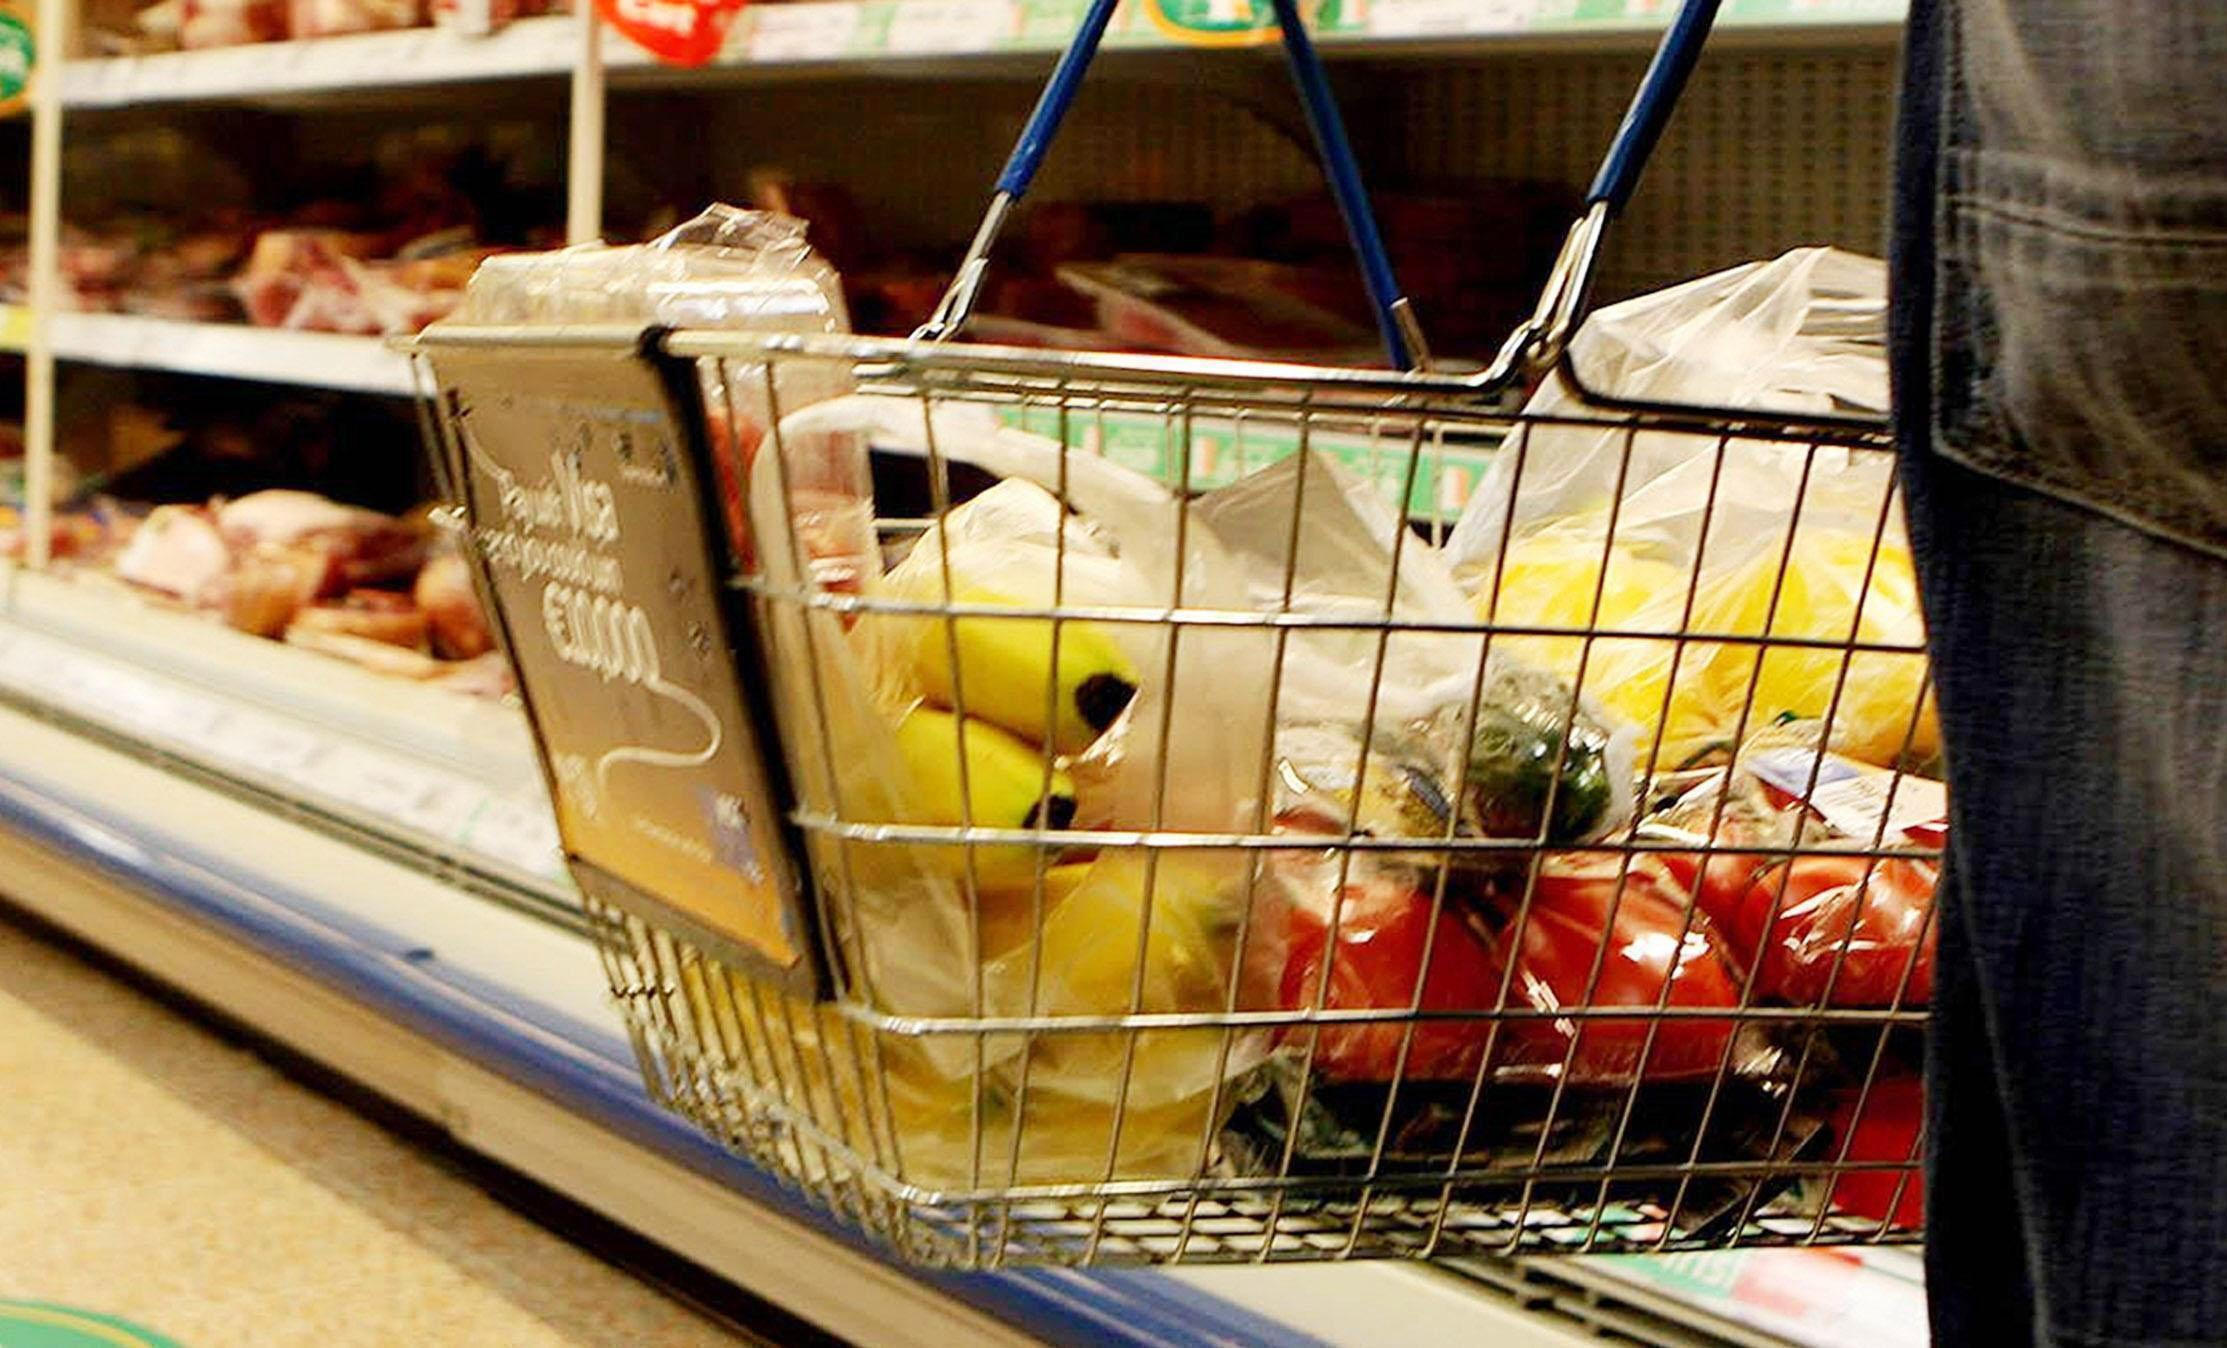 Pro-EU campaigners have calculated the cost of a basket of shopping since the June 2016 referendum.